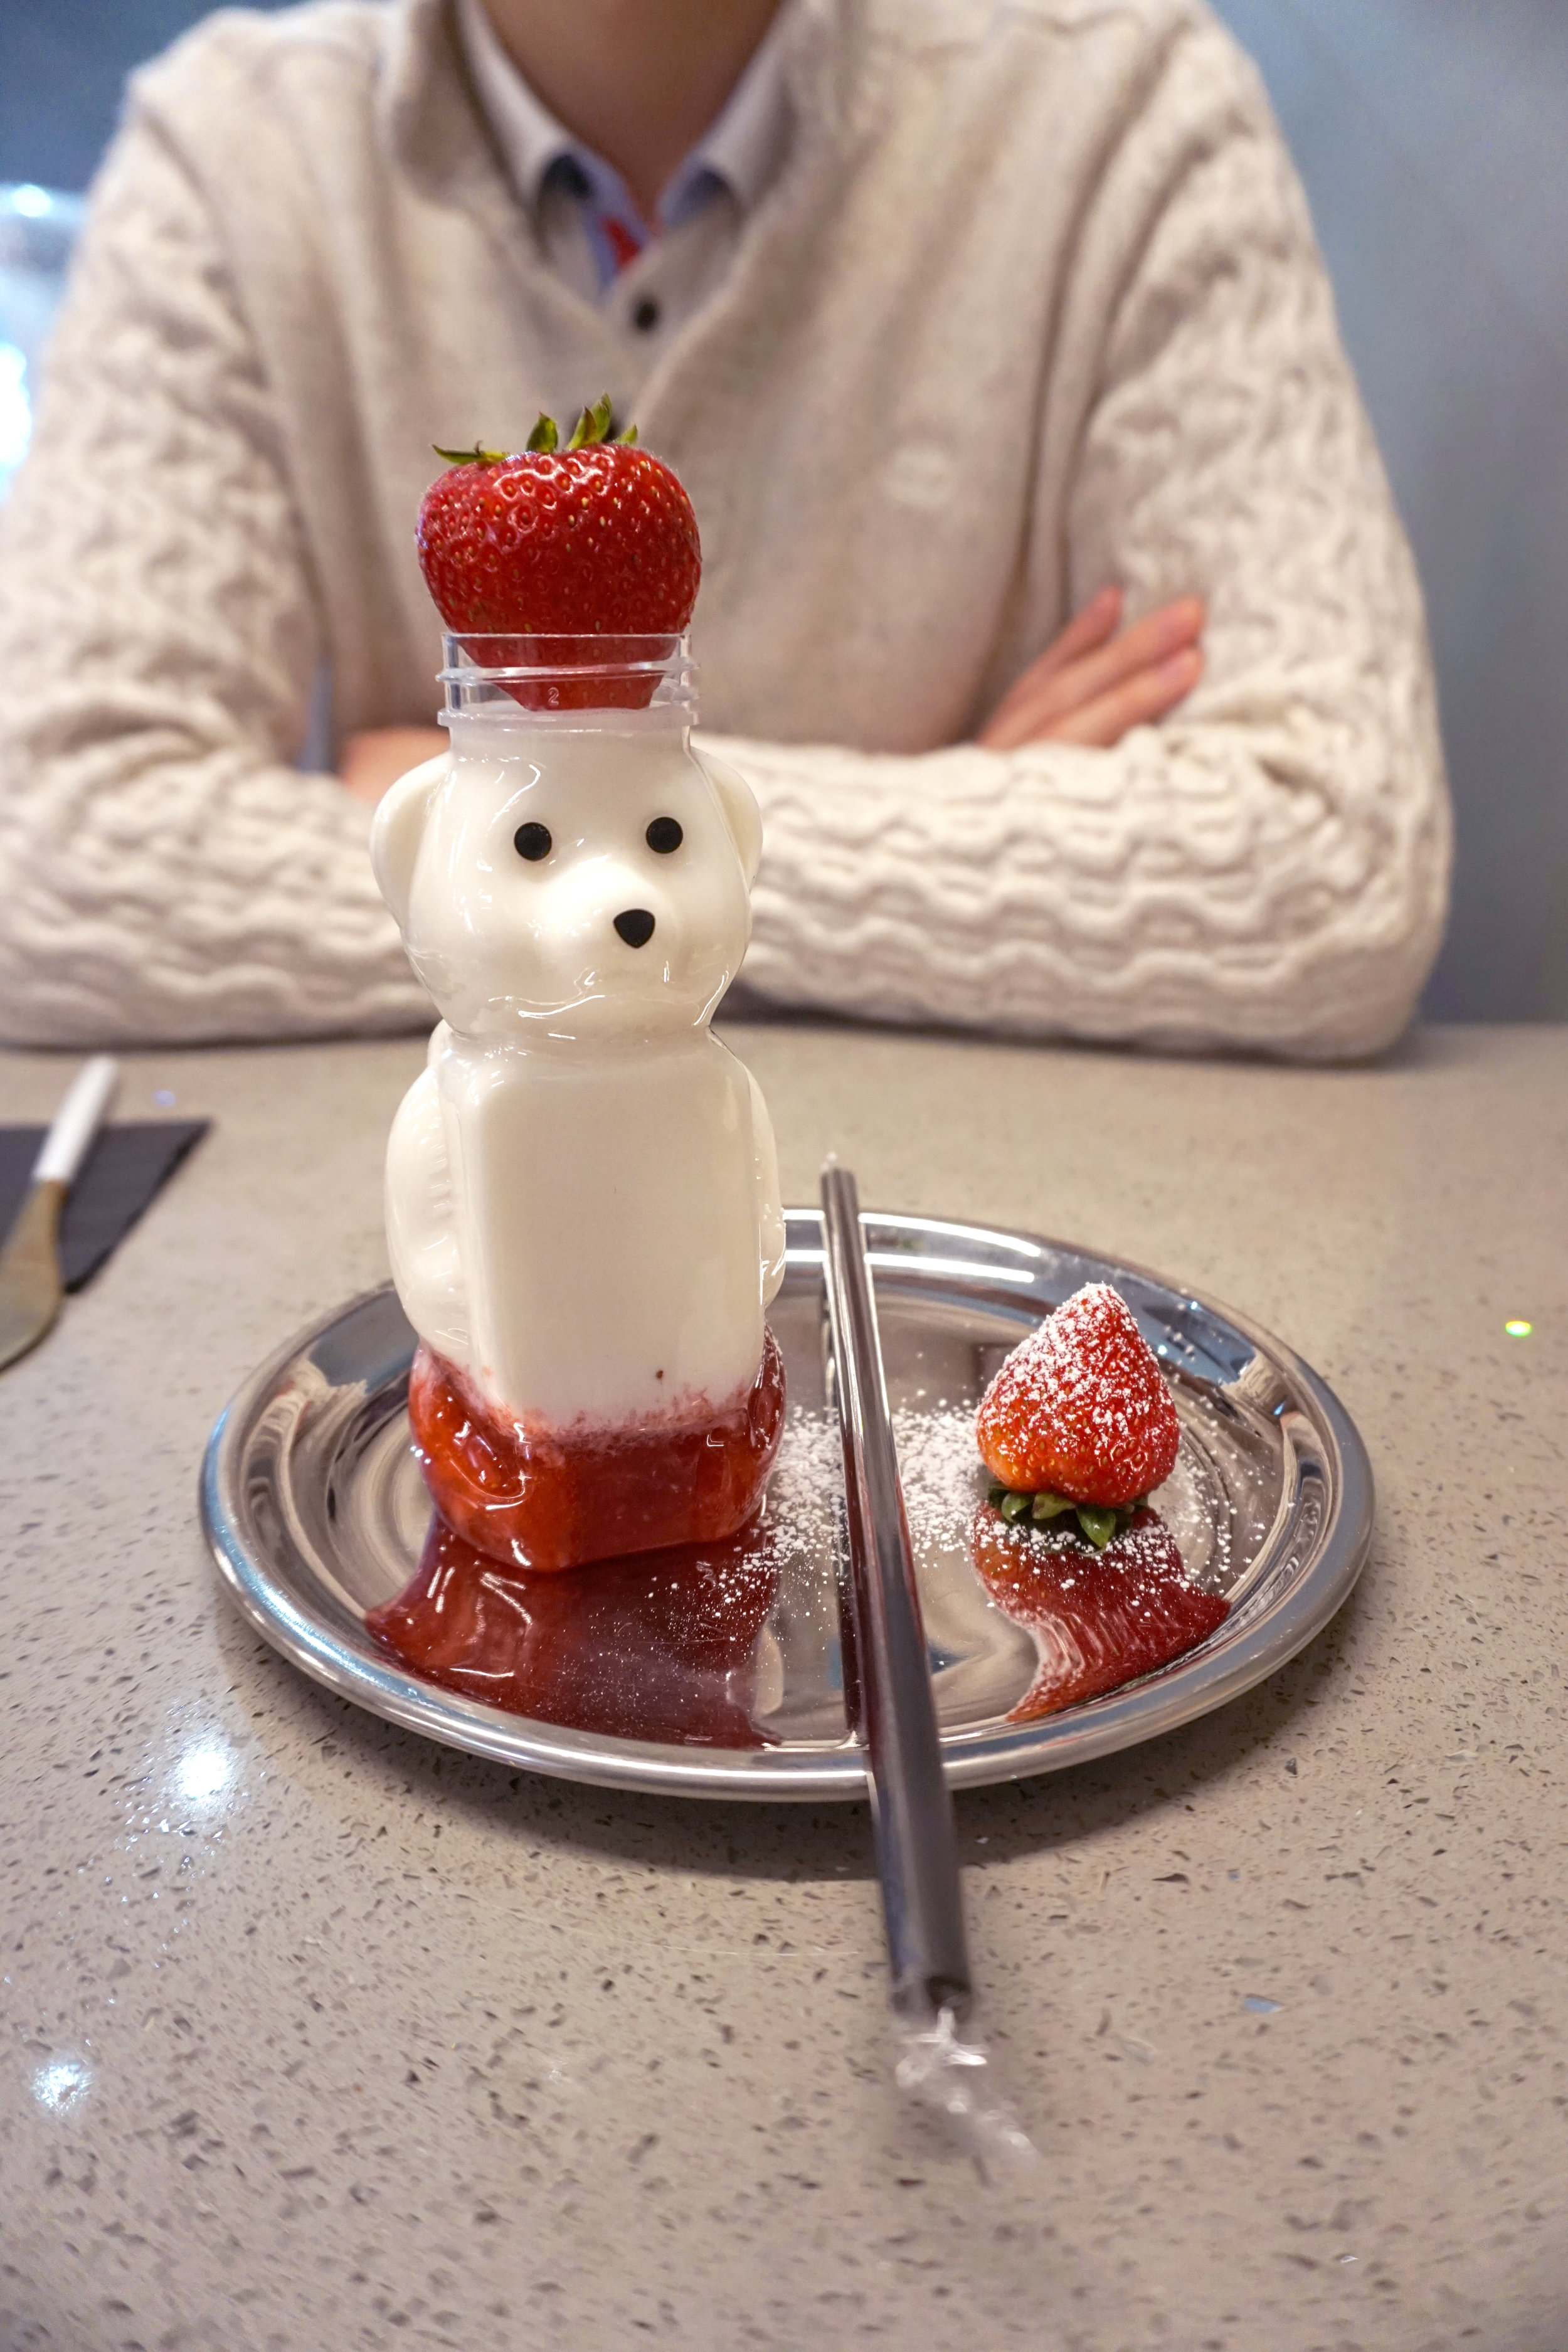 """""""Strawberry Milk"""" made from, you guessed it, fresh crushed strawberries and whole milk, displayed in the cutest bear jar (that looks like those squeezable jars of honey). Yum."""